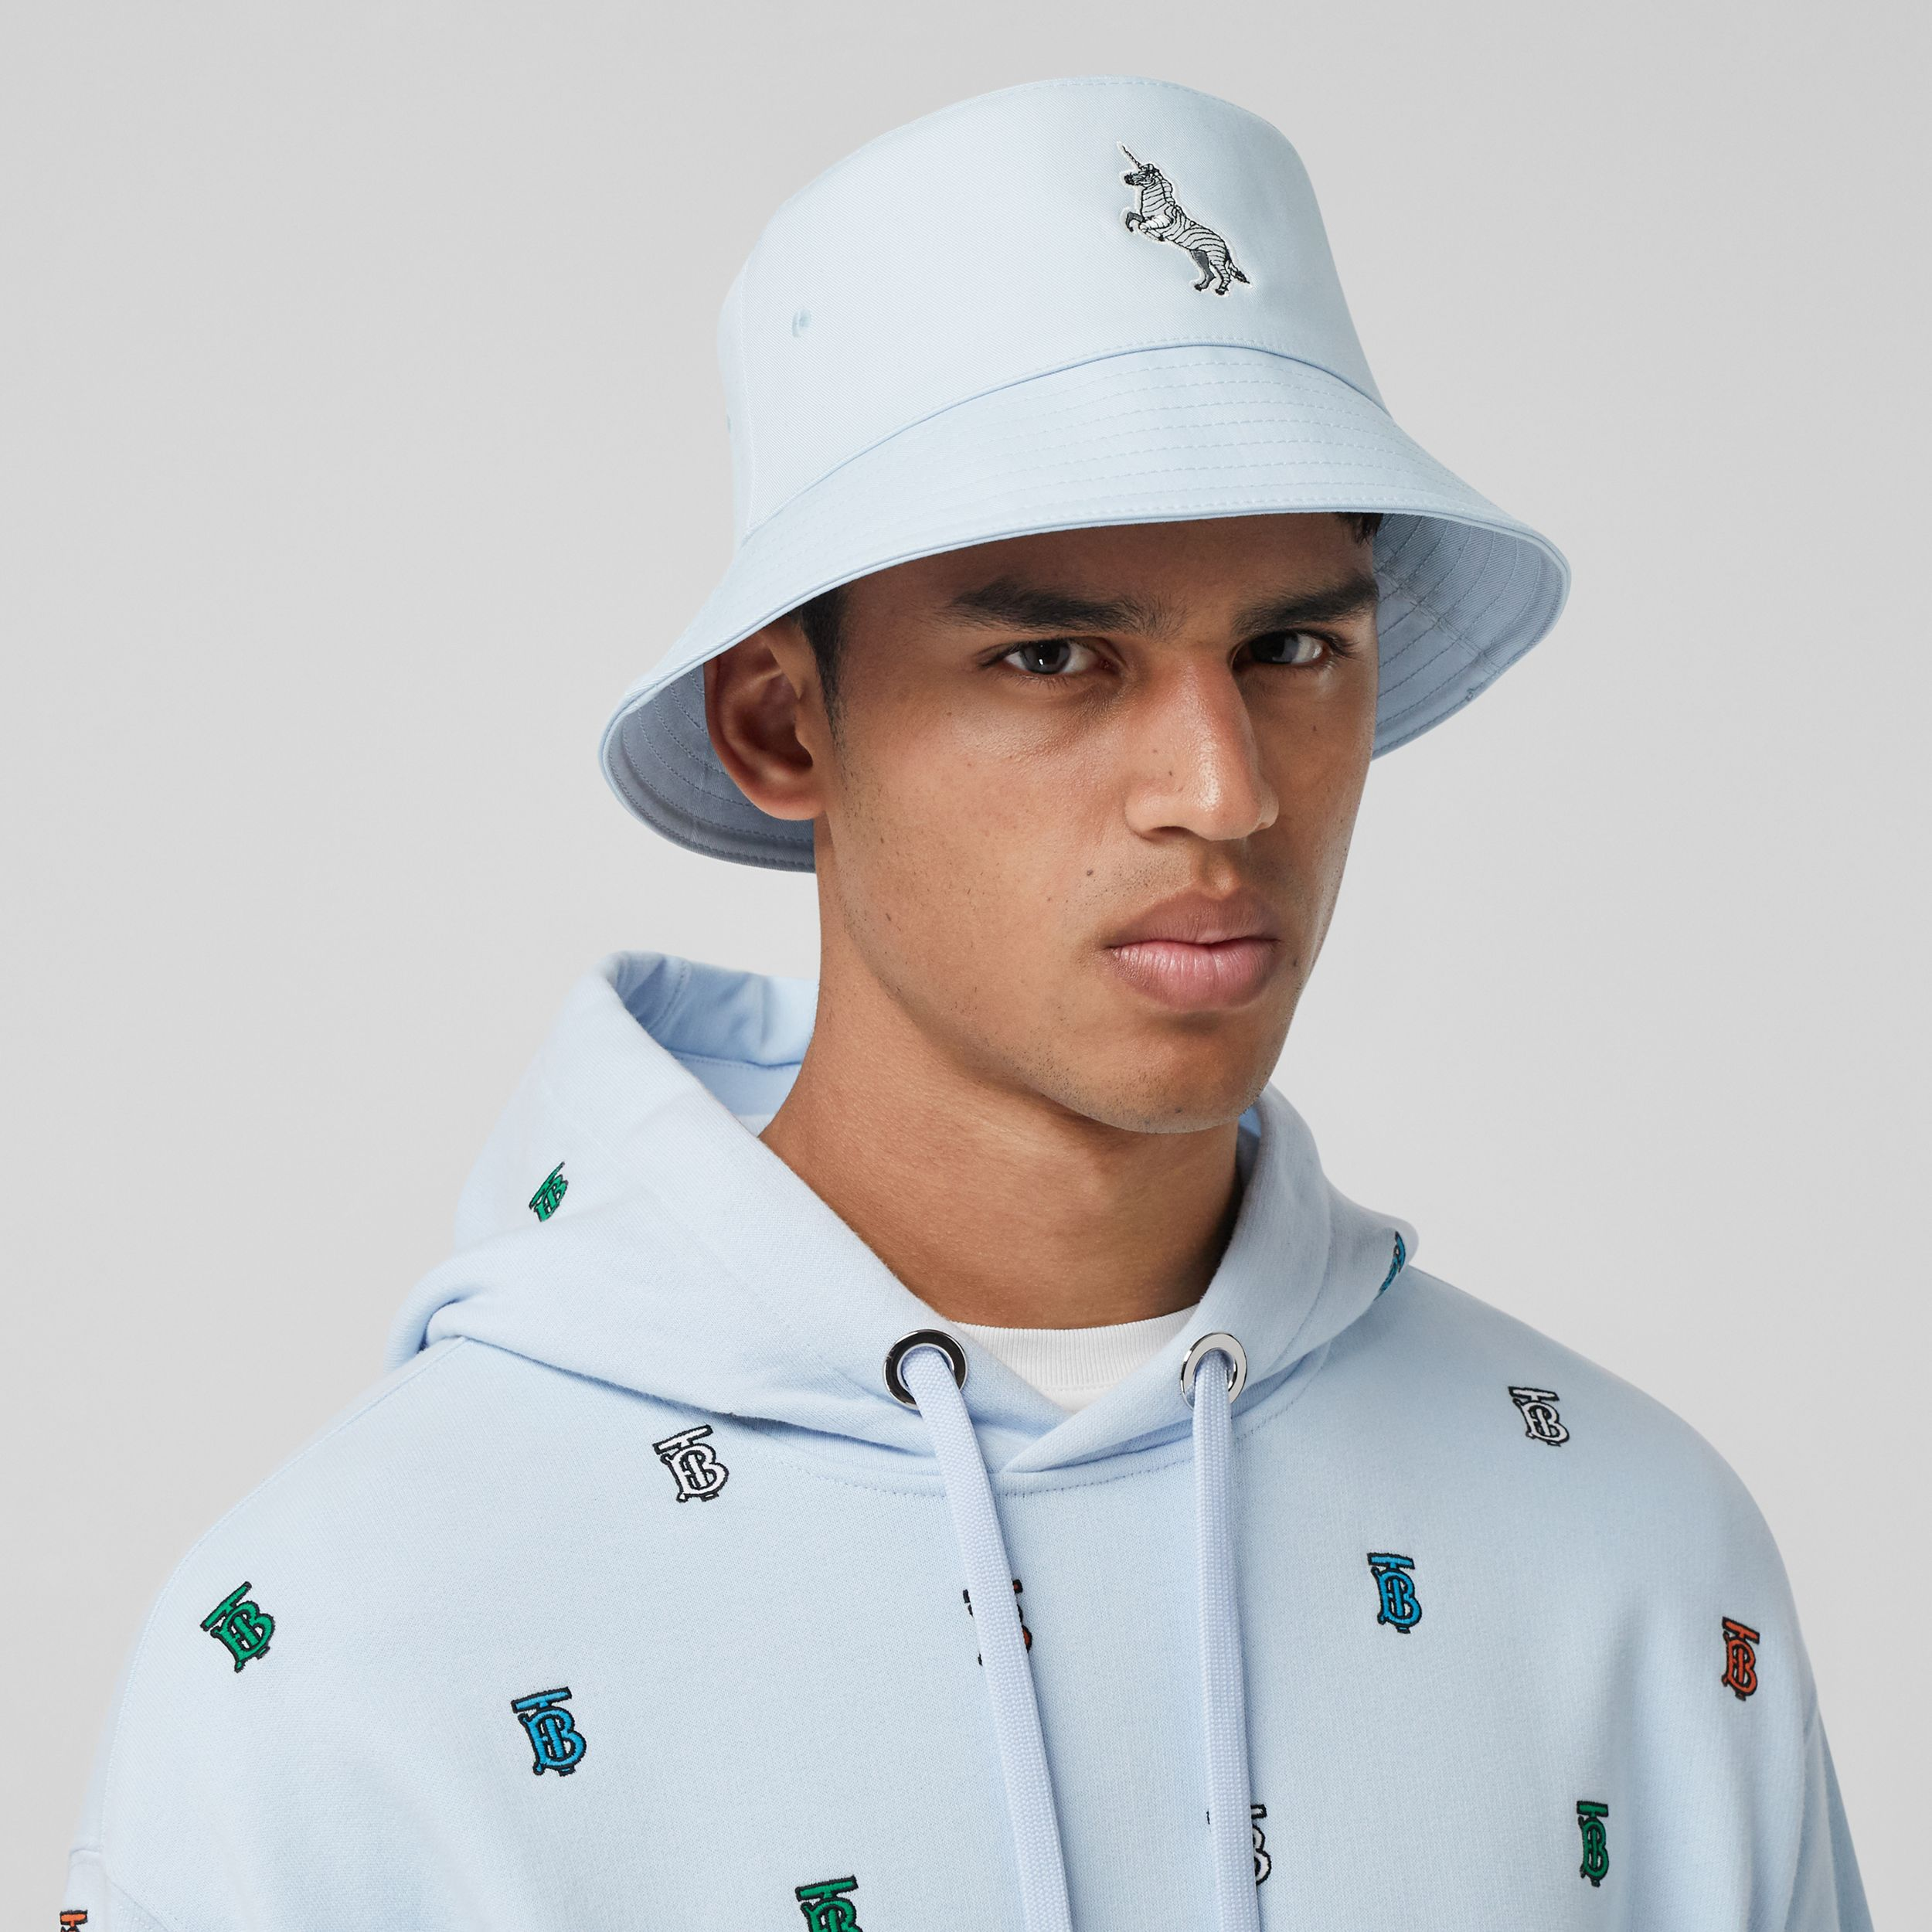 Zebra Appliqué Cotton Twill Bucket Hat in Pale Blue | Burberry - 4